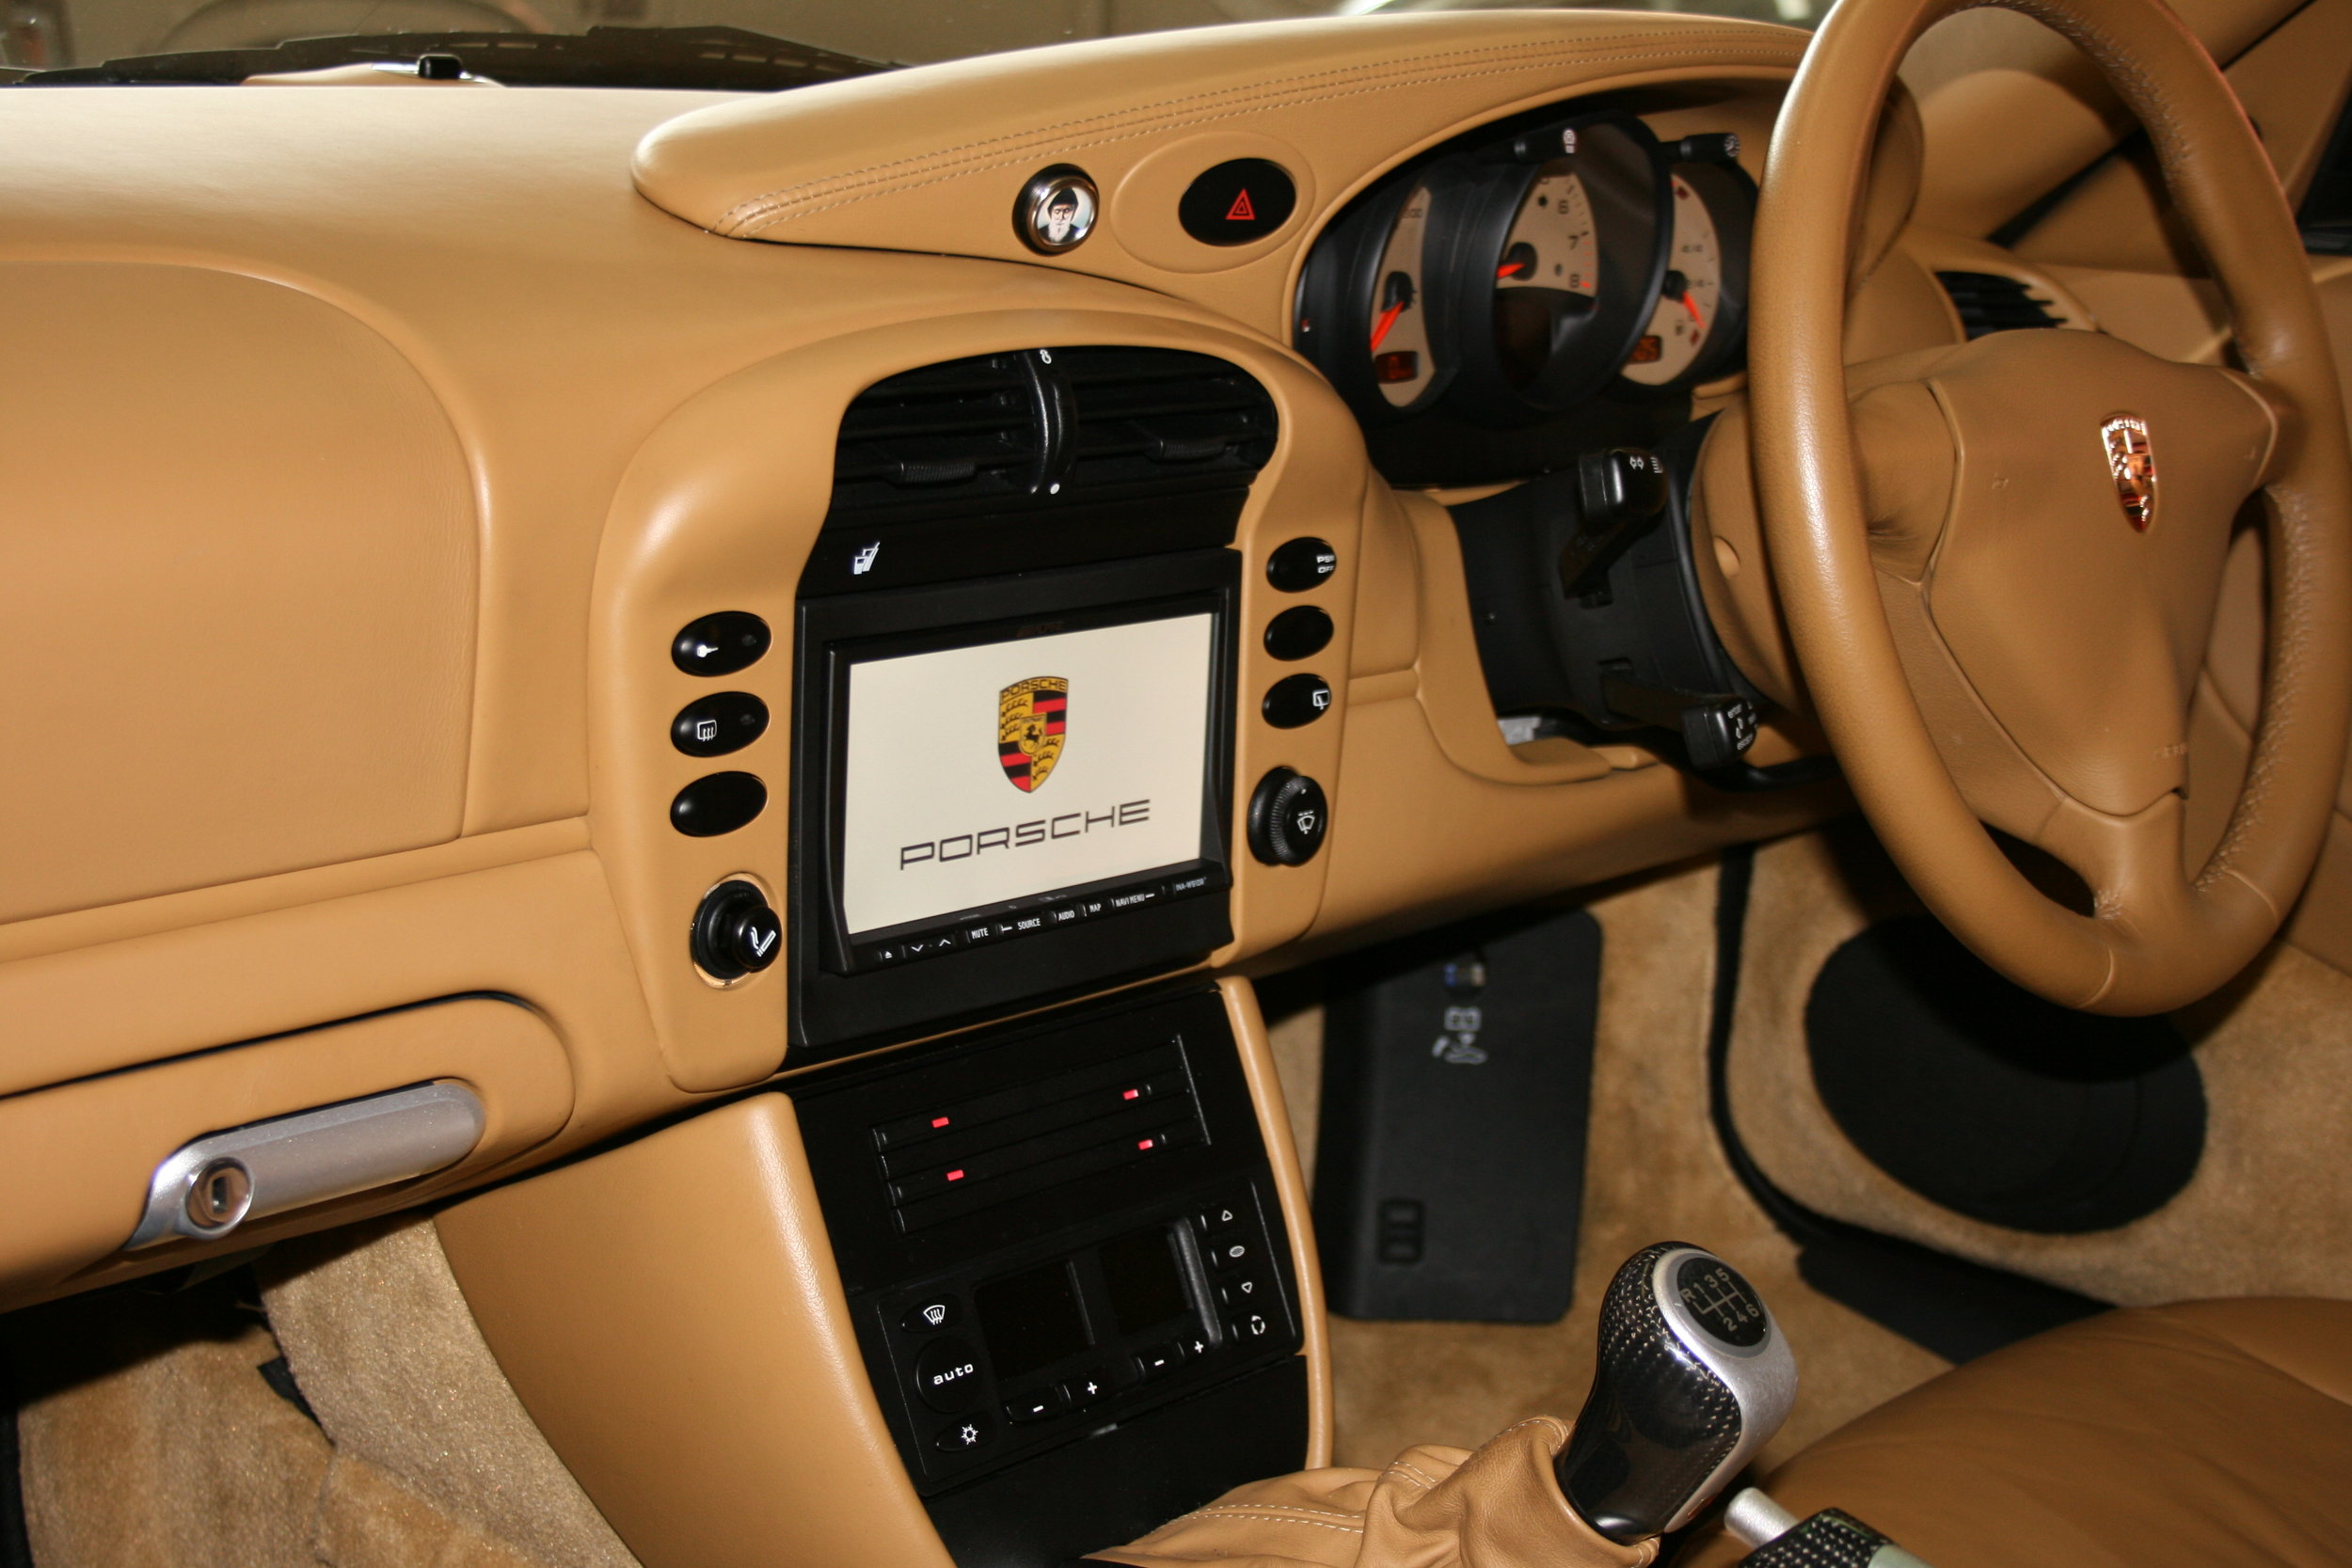 A double-DIN radio fitted nicely into a 996